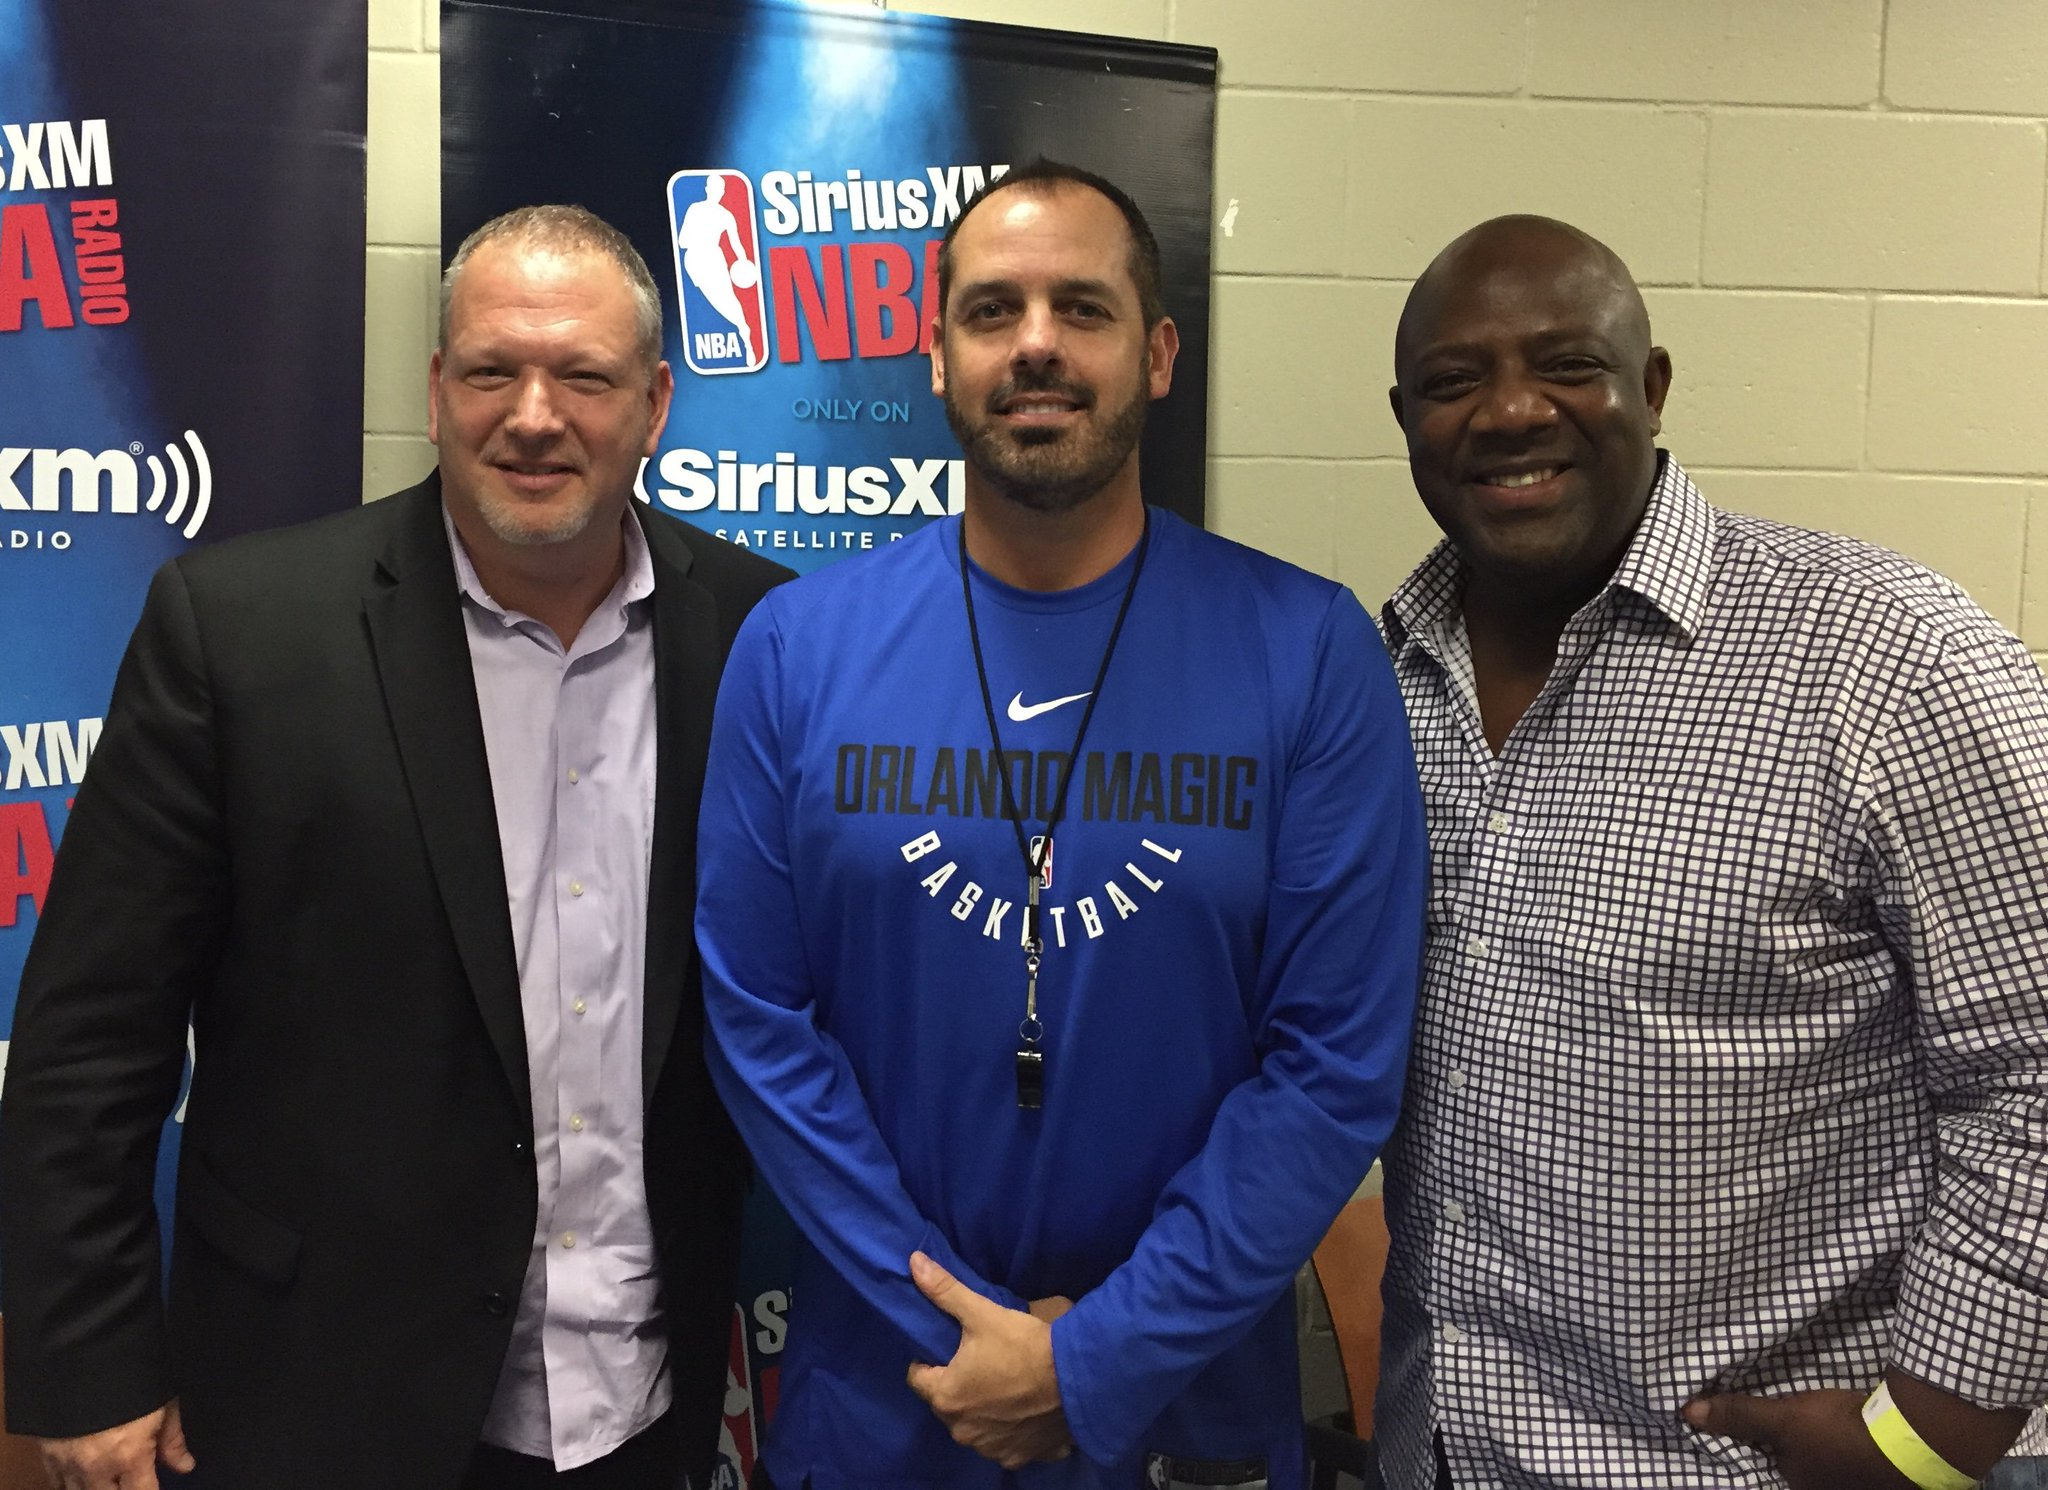 Get ready for the season... with @SiriusXMNBA's @OrlandoMagic Team Preview Show at 7pm/et! https://t.co/YCyiudgdOS